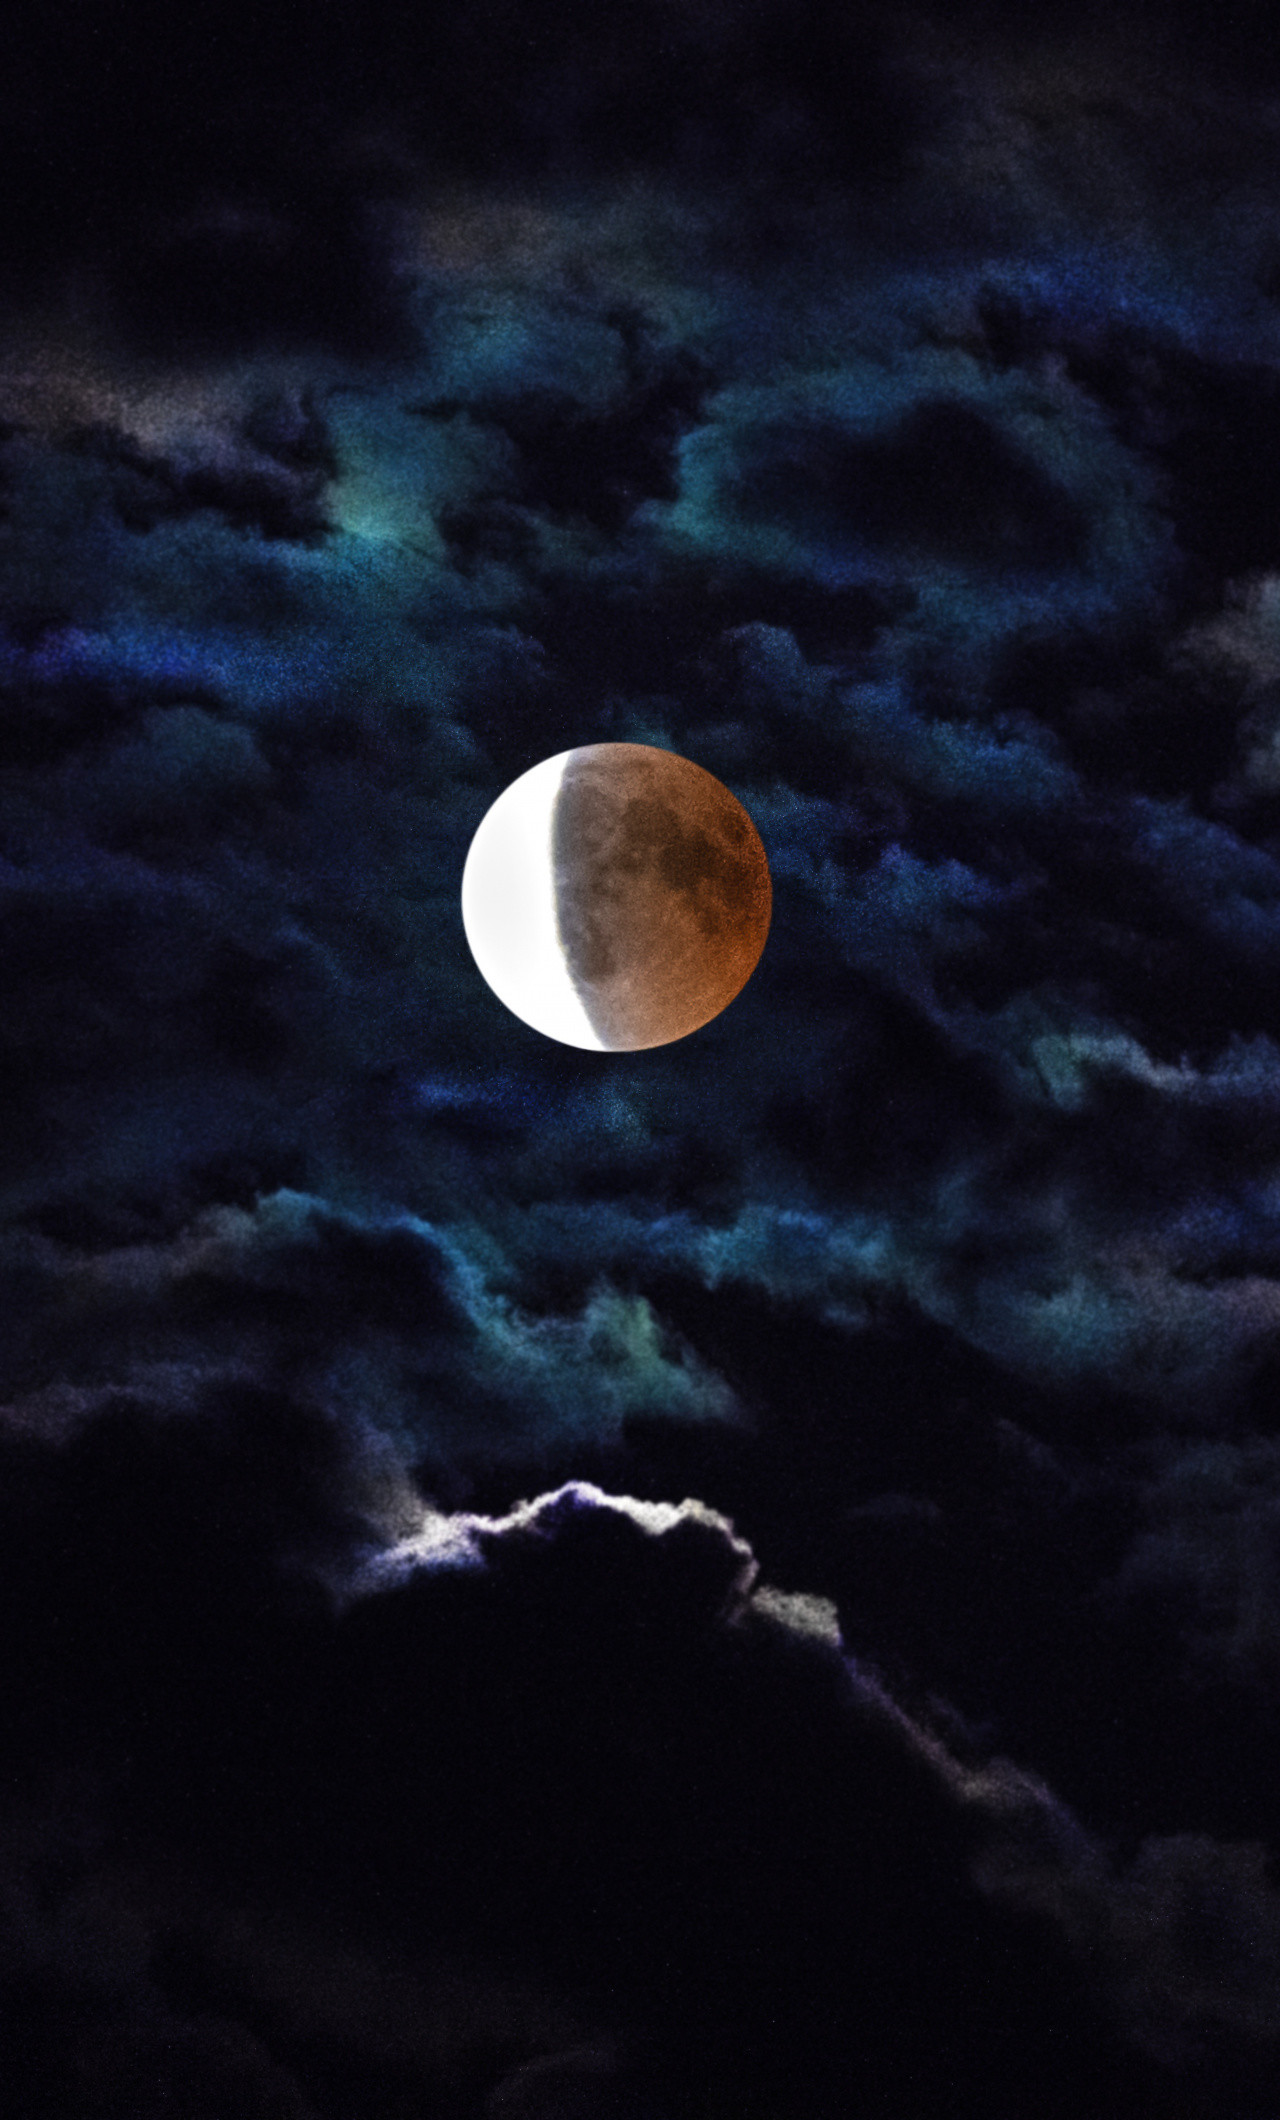 Blood Moon Wallpaper Iphone 70 Images